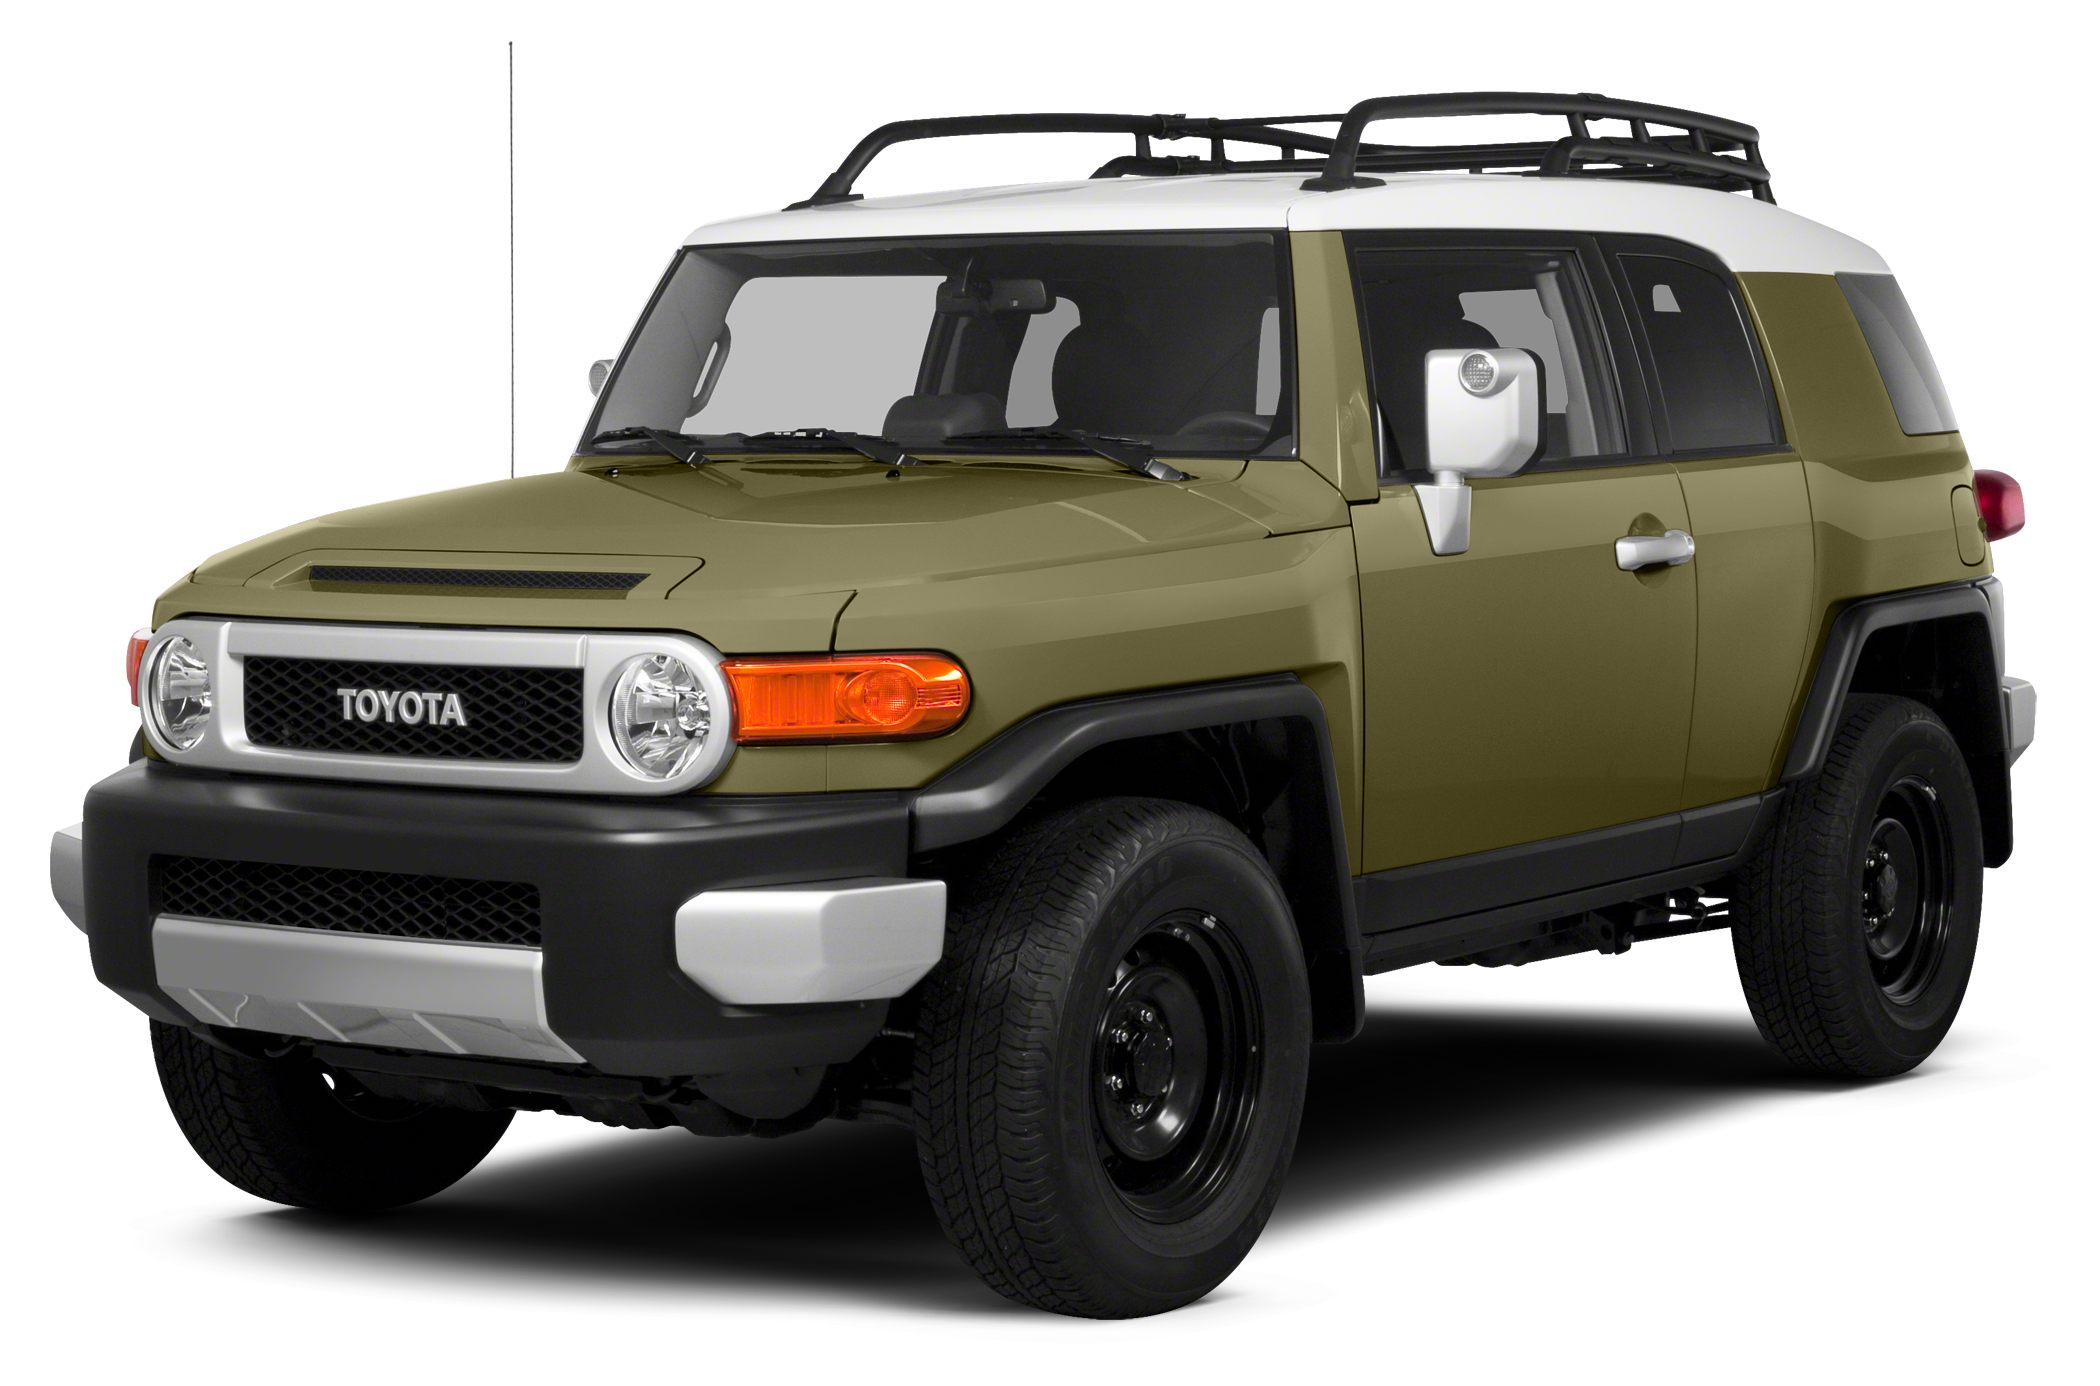 2013 Toyota FJ Cruiser Base CEMENT exterior and DARK CHARCOAL interior FJ Cruiser trim CARFAX 1-